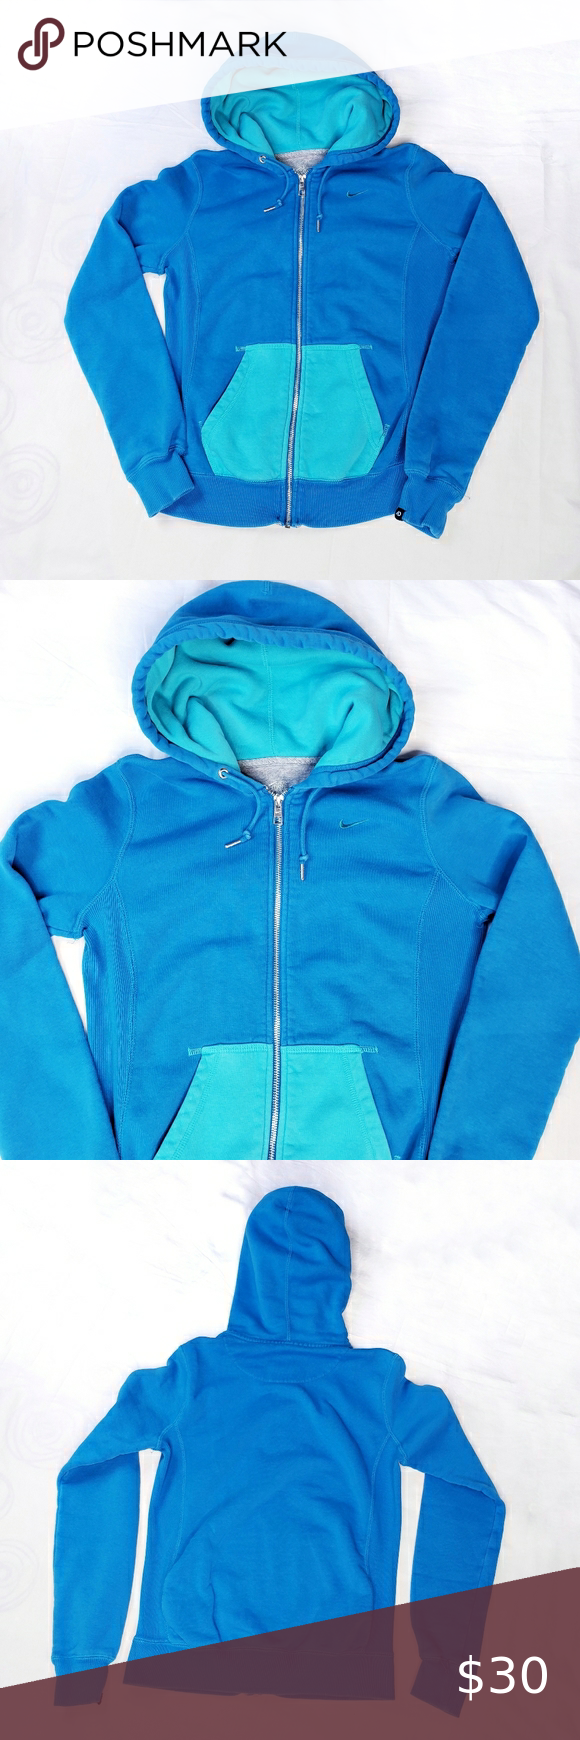 Nike Full Zip Color Block Hoodie Blue Aqua Small Nike The Athletic Dept Full Zip Up Color Block Style Hoodie Blue With Clothes Design Fashion Fashion Design [ 1740 x 580 Pixel ]